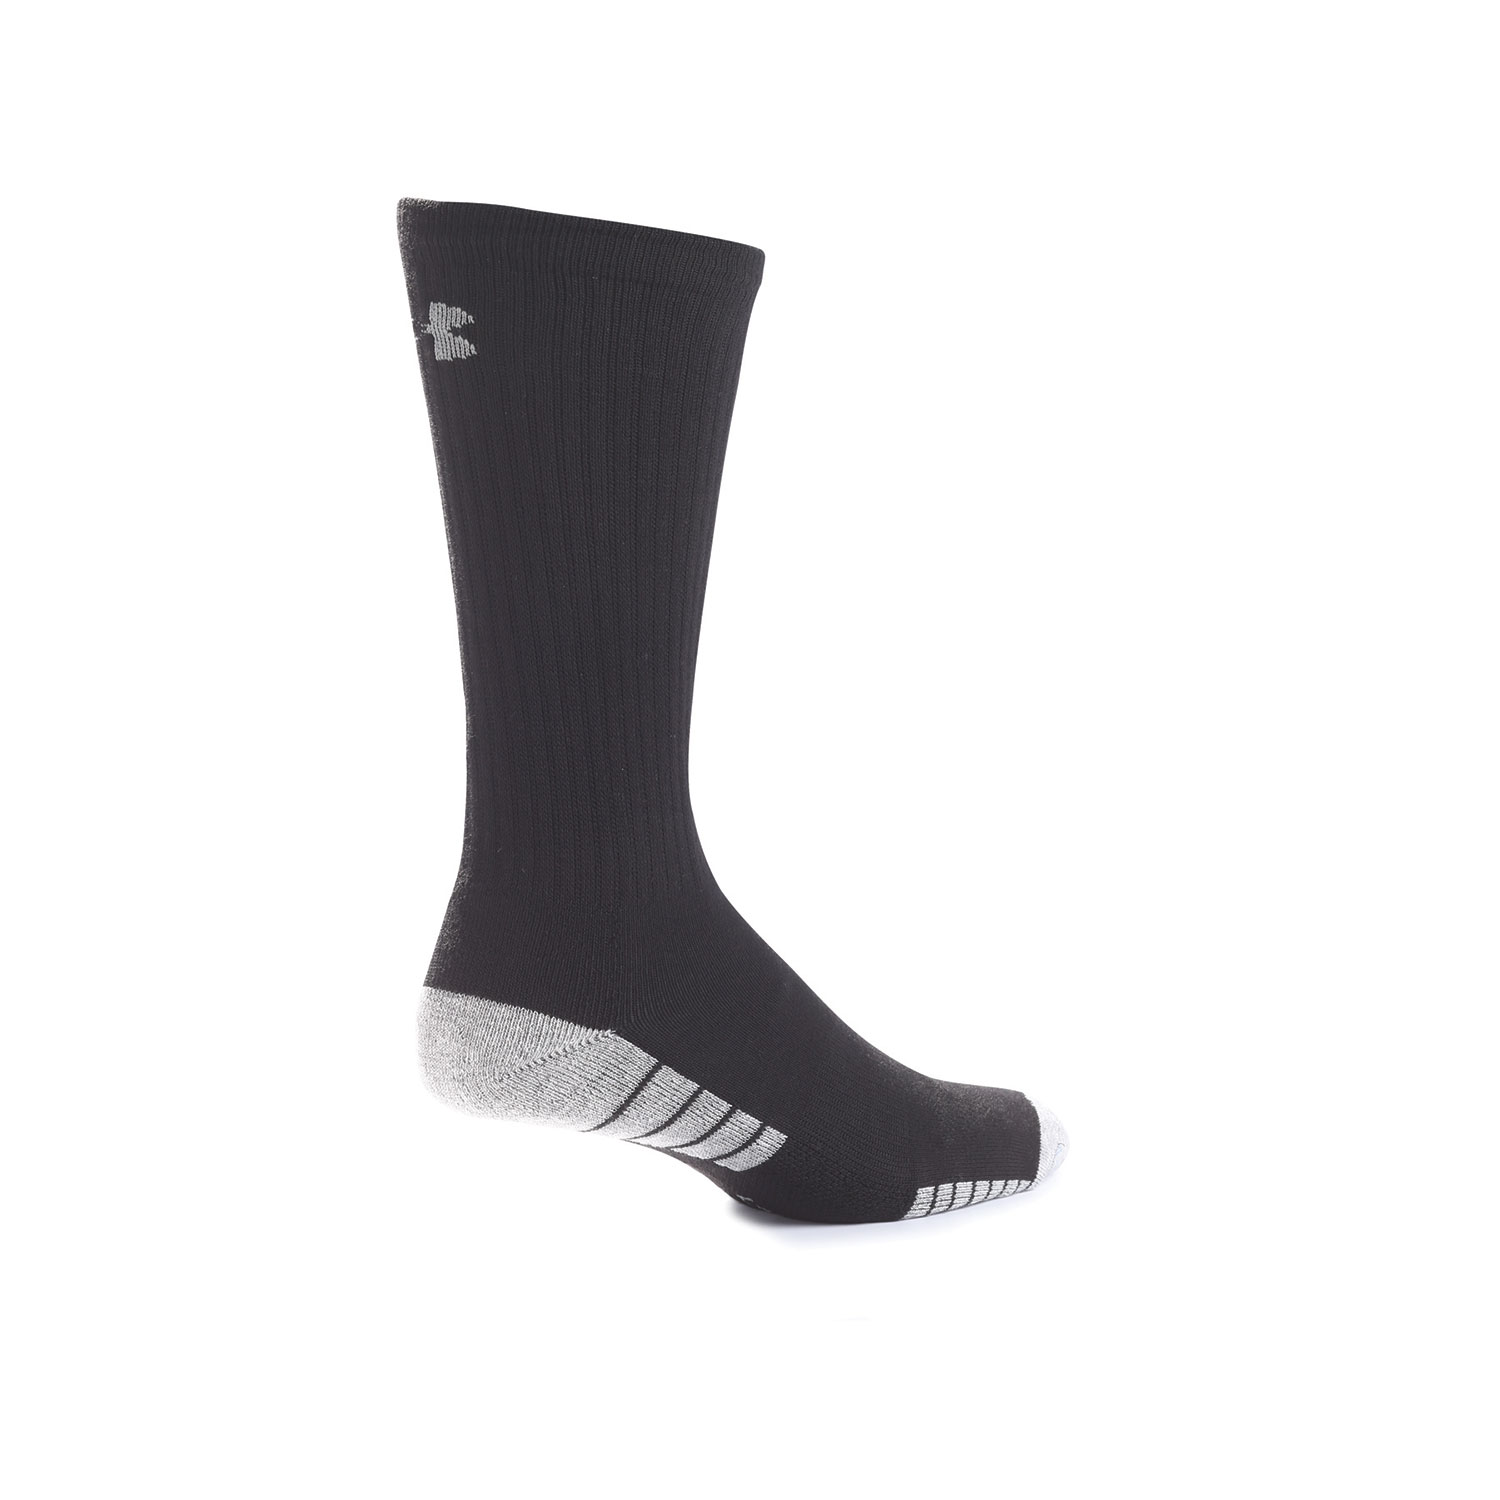 Under Armour HeatGear Tech Crew Socks 3 Pack